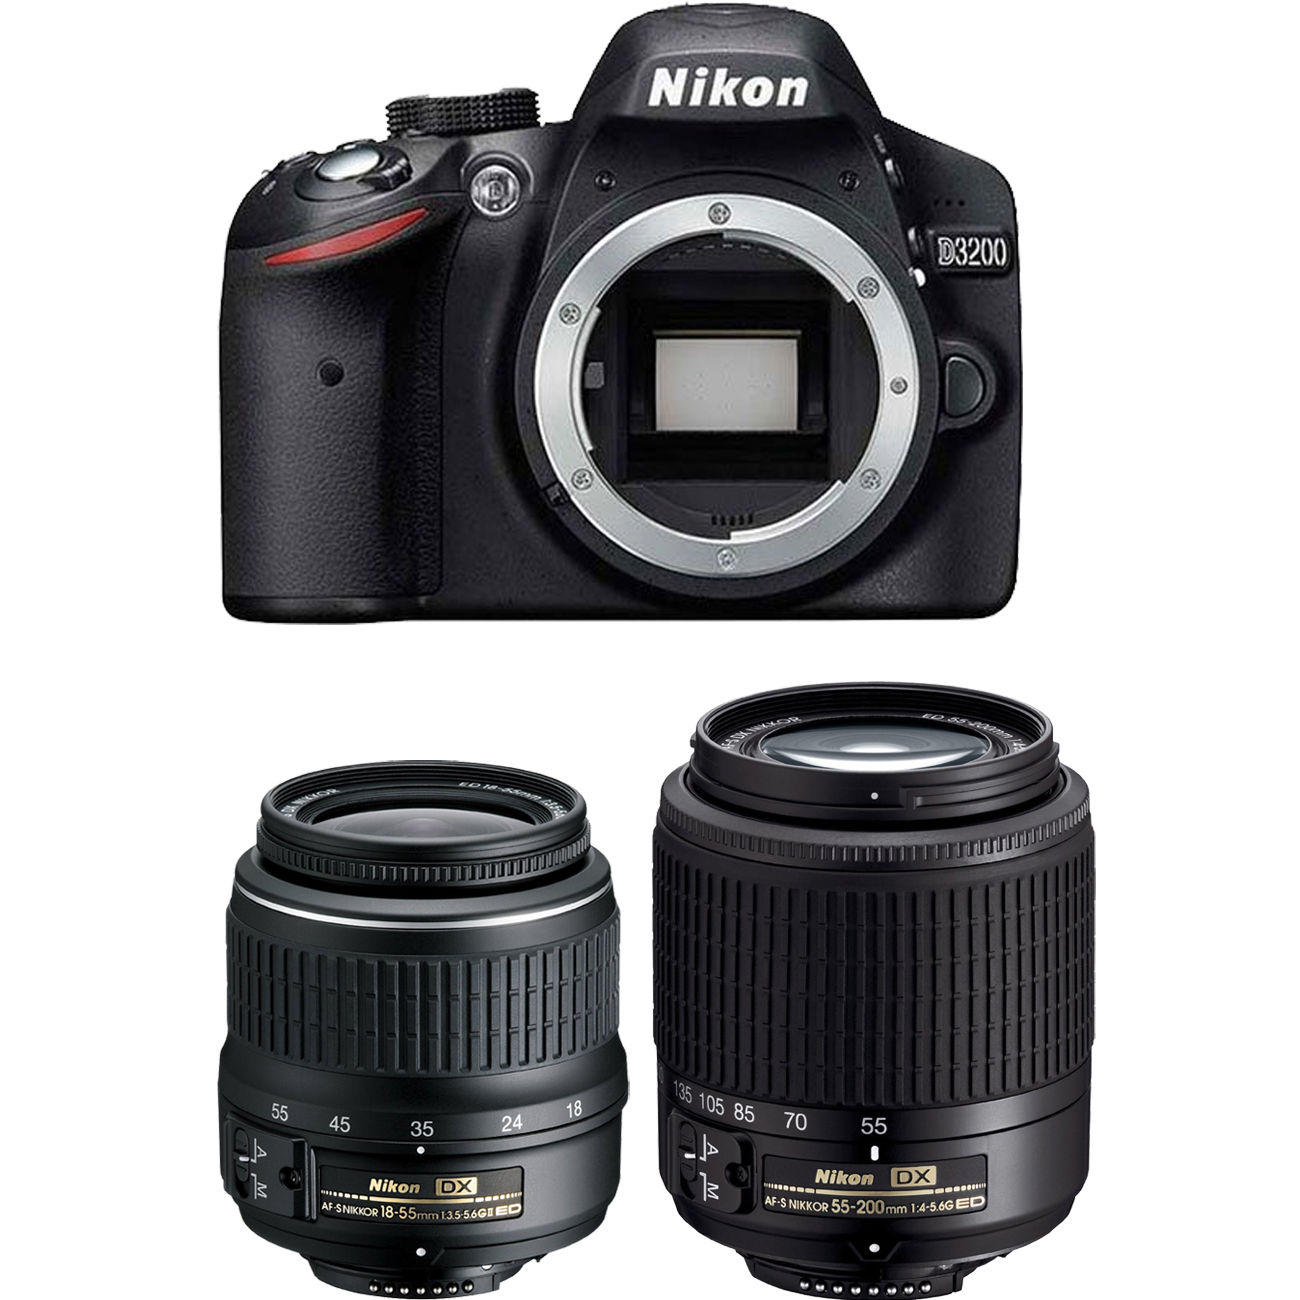 Nikon D3200 DSLR Camera with 18-55mm VR II and 55-200mm VR II Lenses